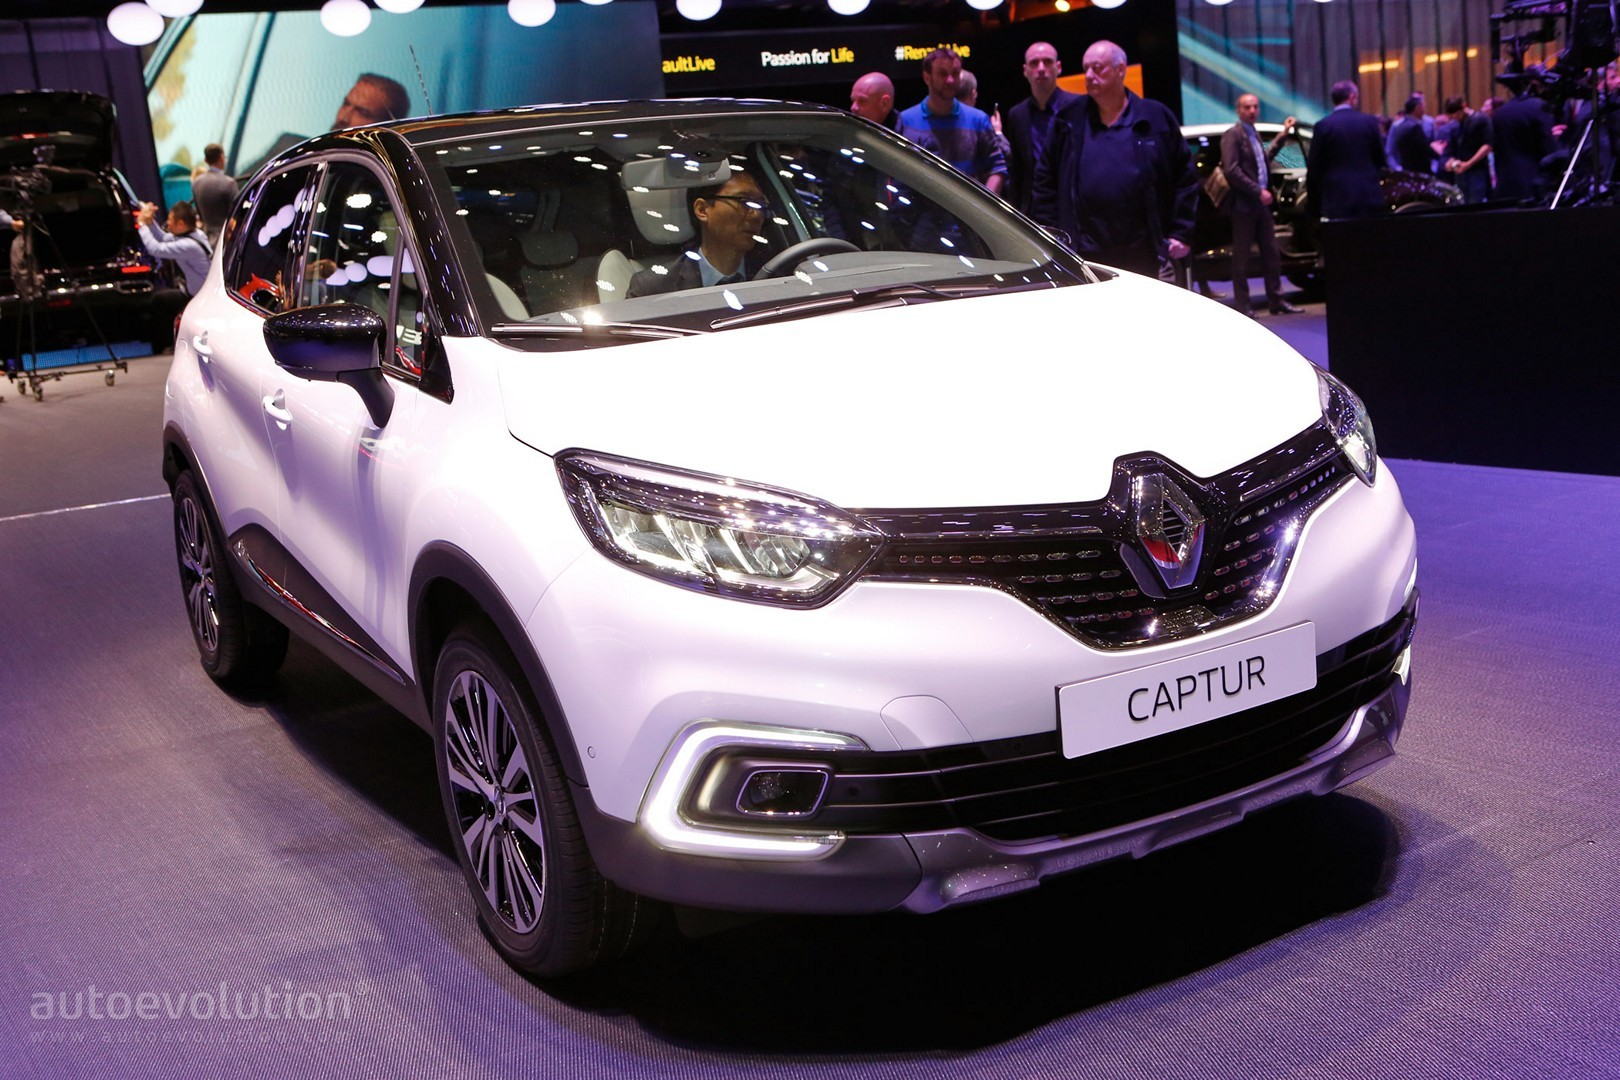 2017 renault captur shows leds at geneva motor show autoevolution. Black Bedroom Furniture Sets. Home Design Ideas